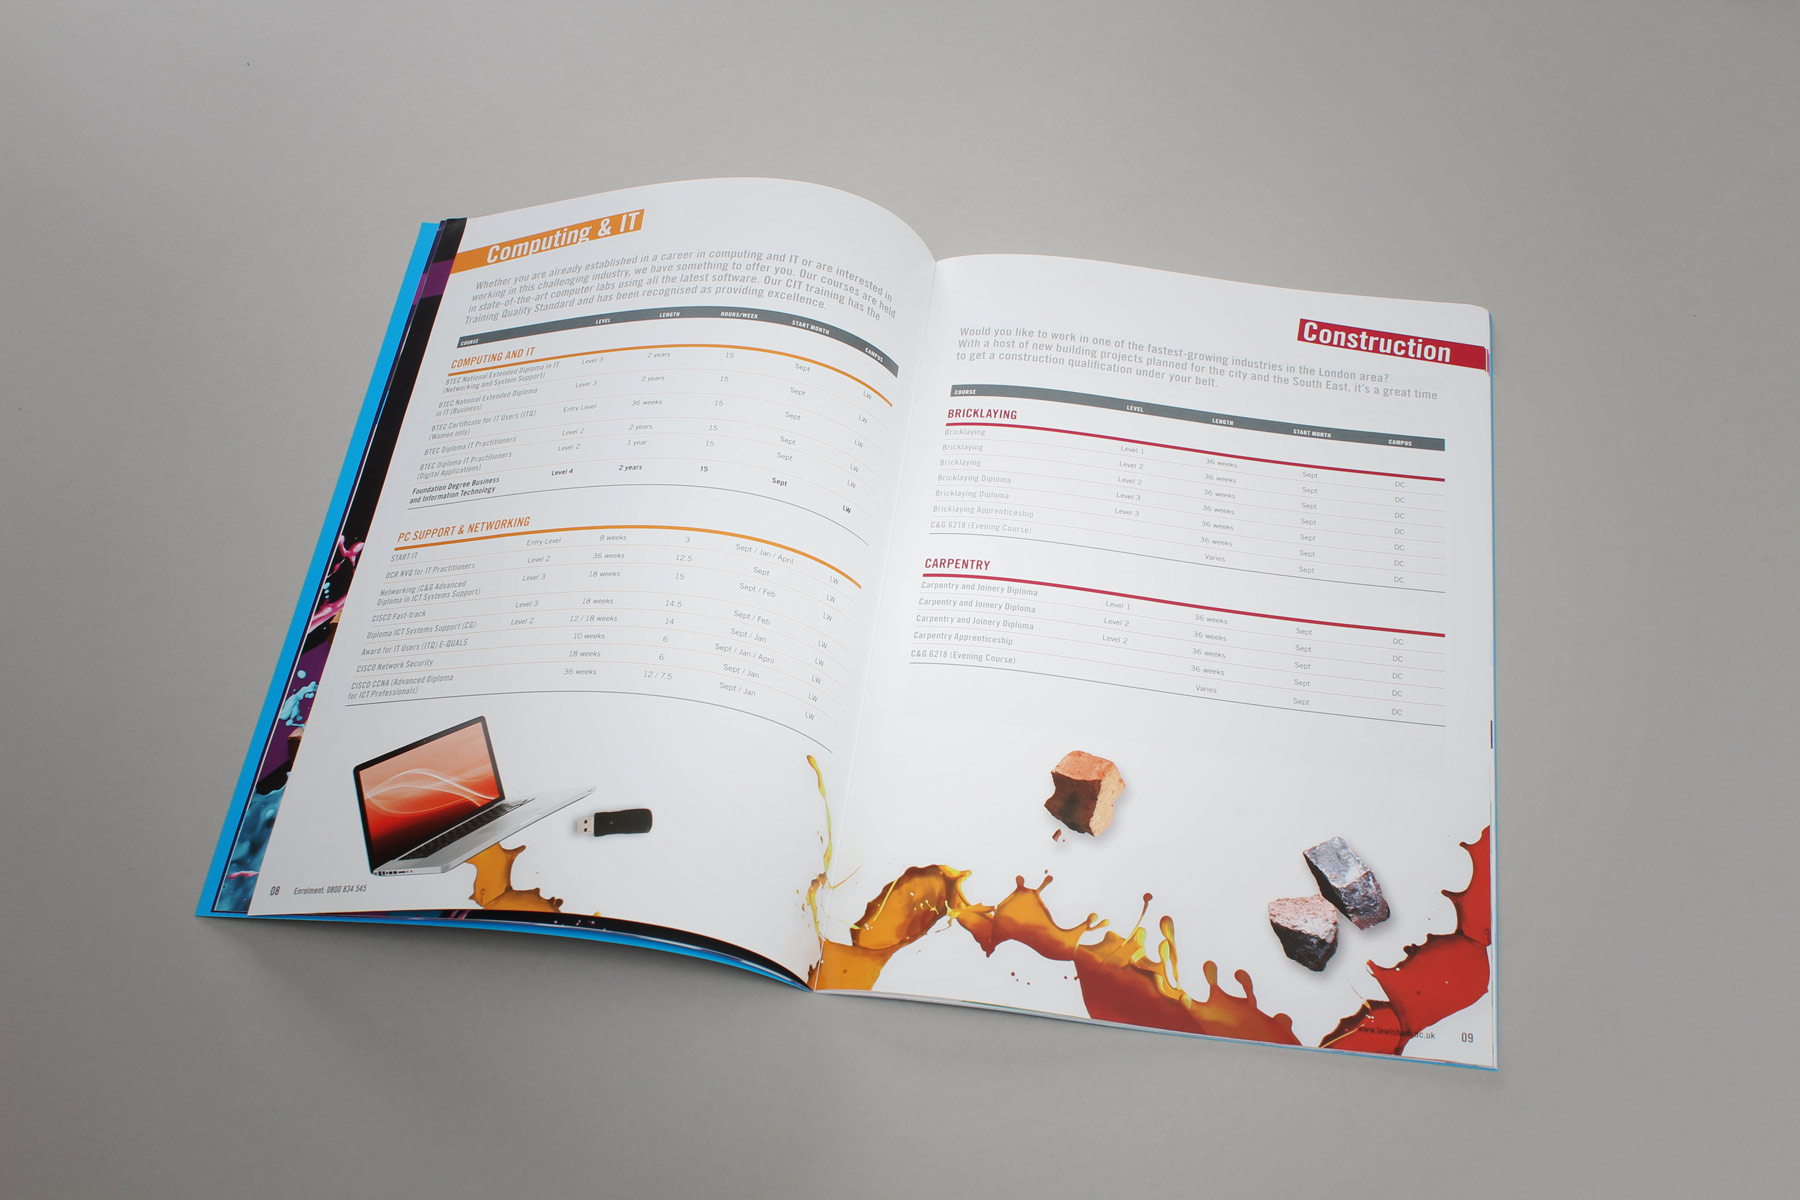 The resulting combination of formal layouts and dynamic imagery makes for both a confident yet accessible publication.